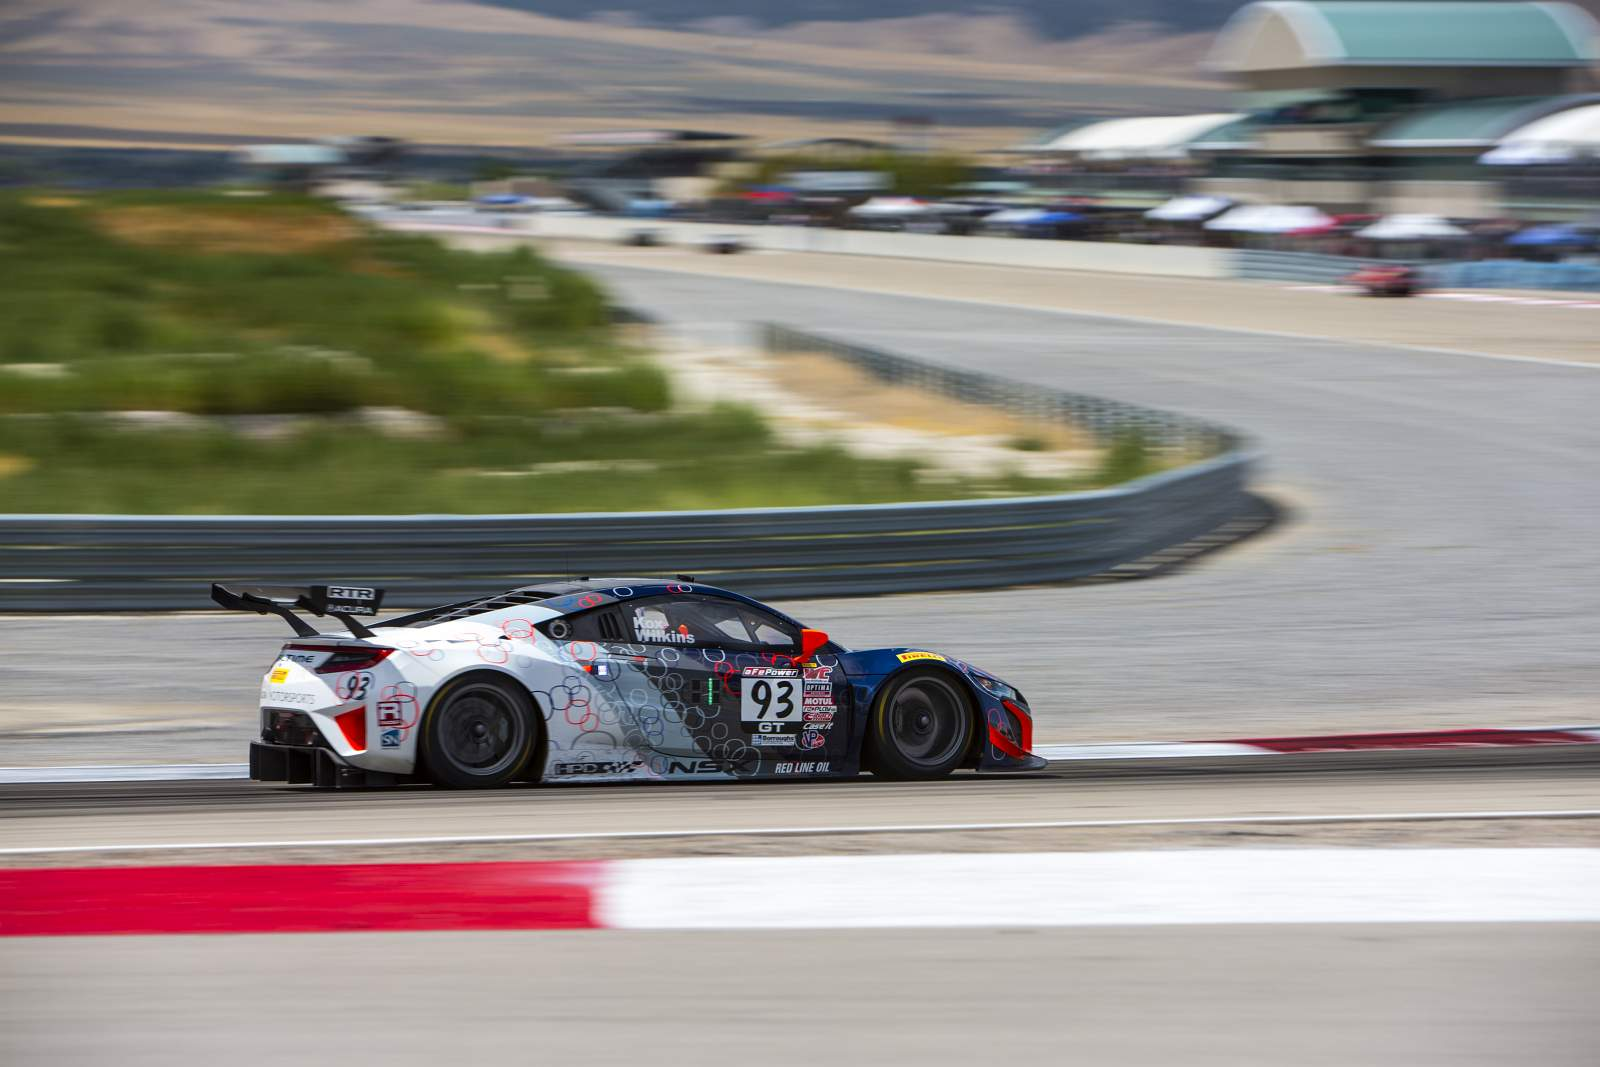 peter-kox-realtime-racing-pirelli-world-challenge-utah-motorsport-campus--160